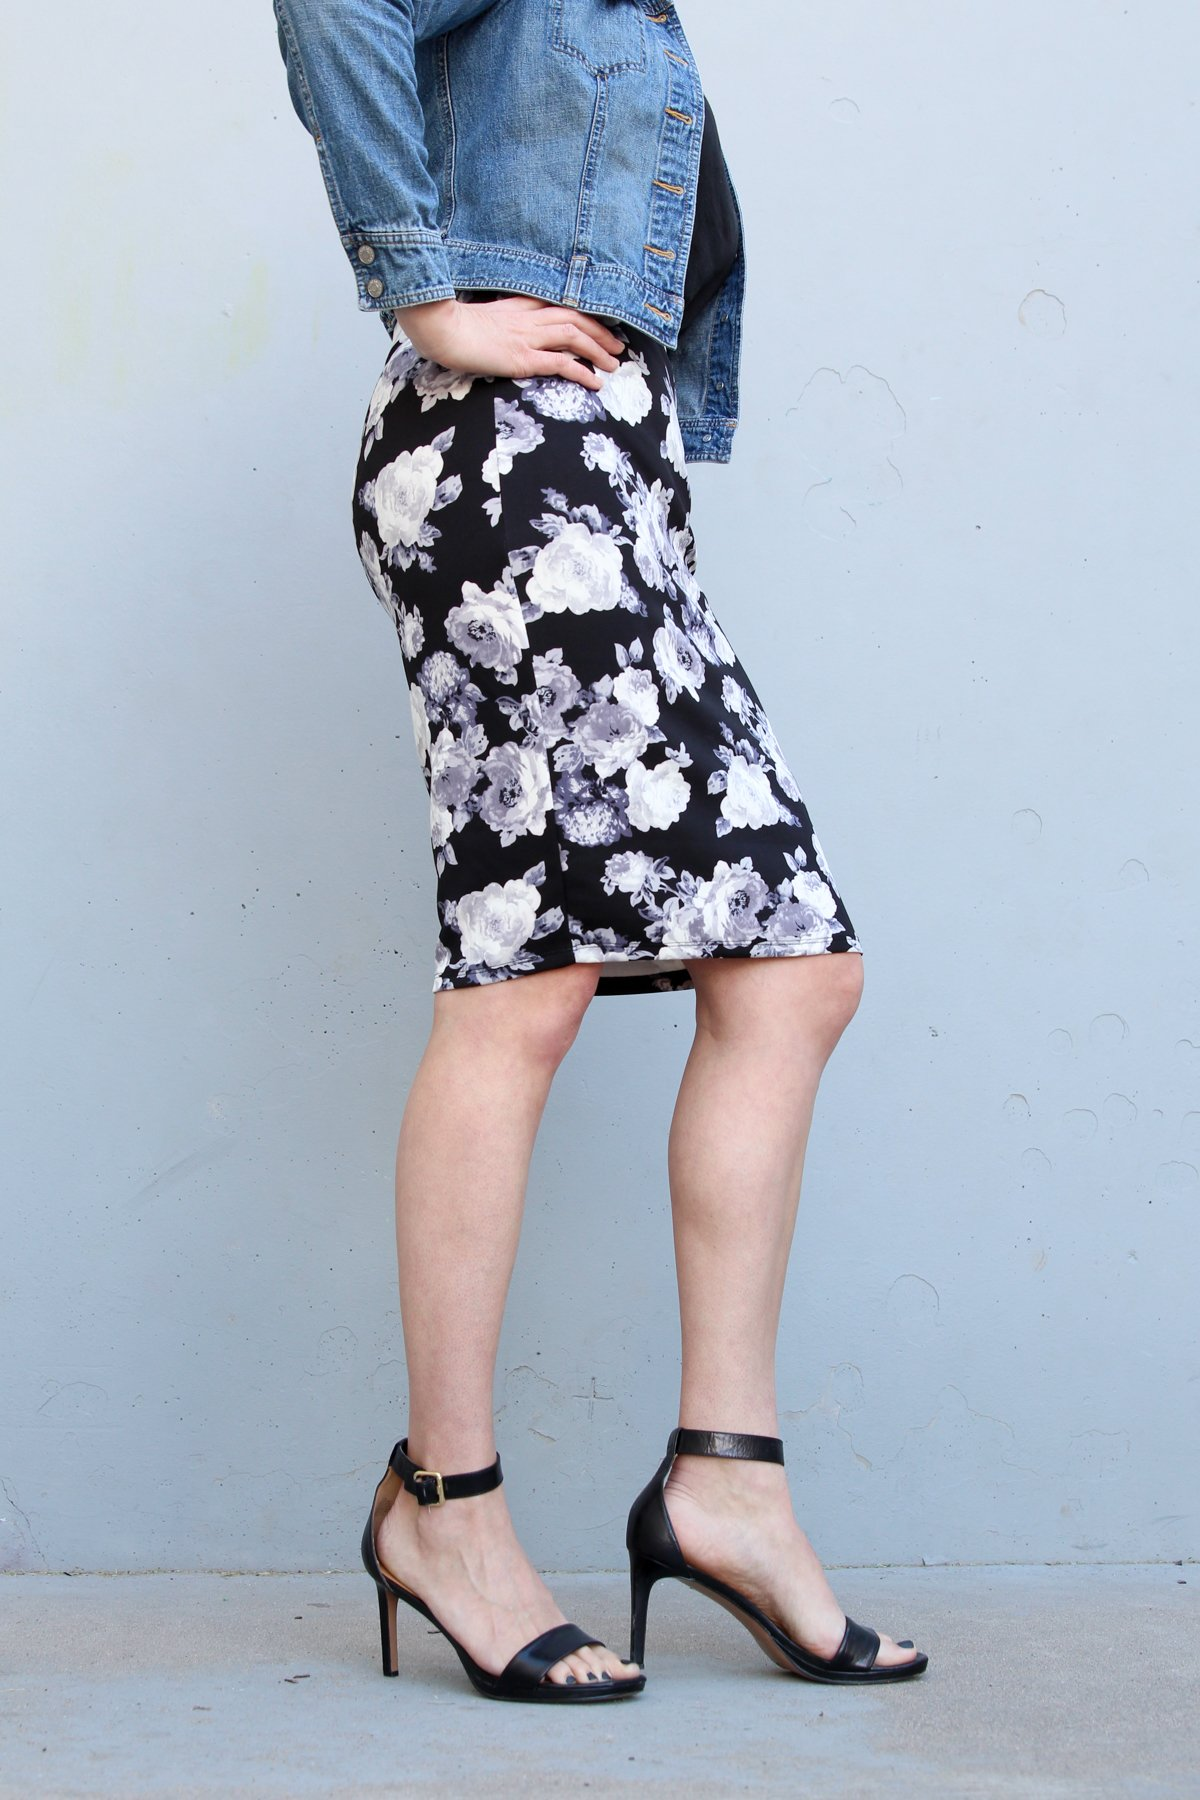 How to Wear a Floral Skirt via @PagingSupermom